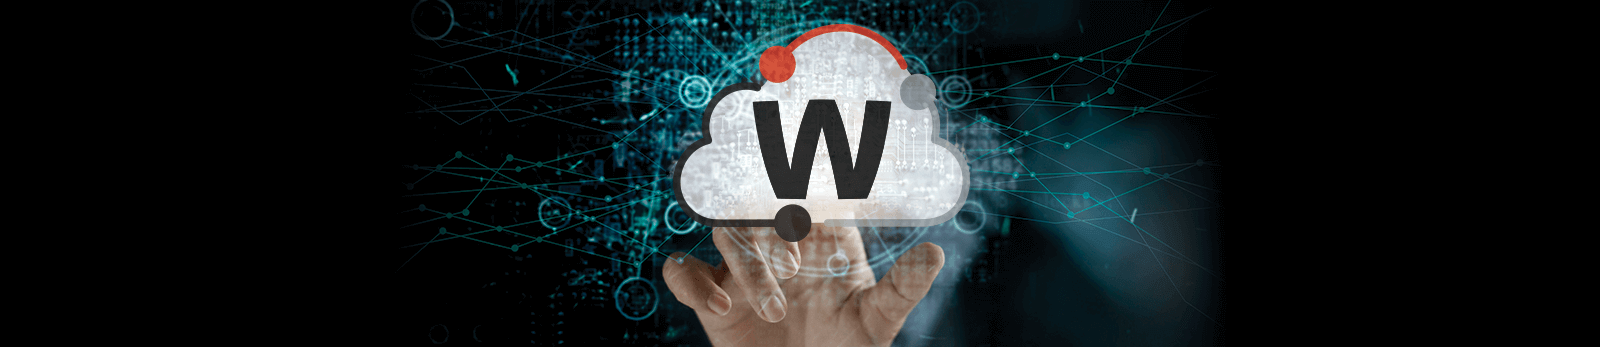 Glowing WatchGuard Cloud icon with a hand reaching up to touch it